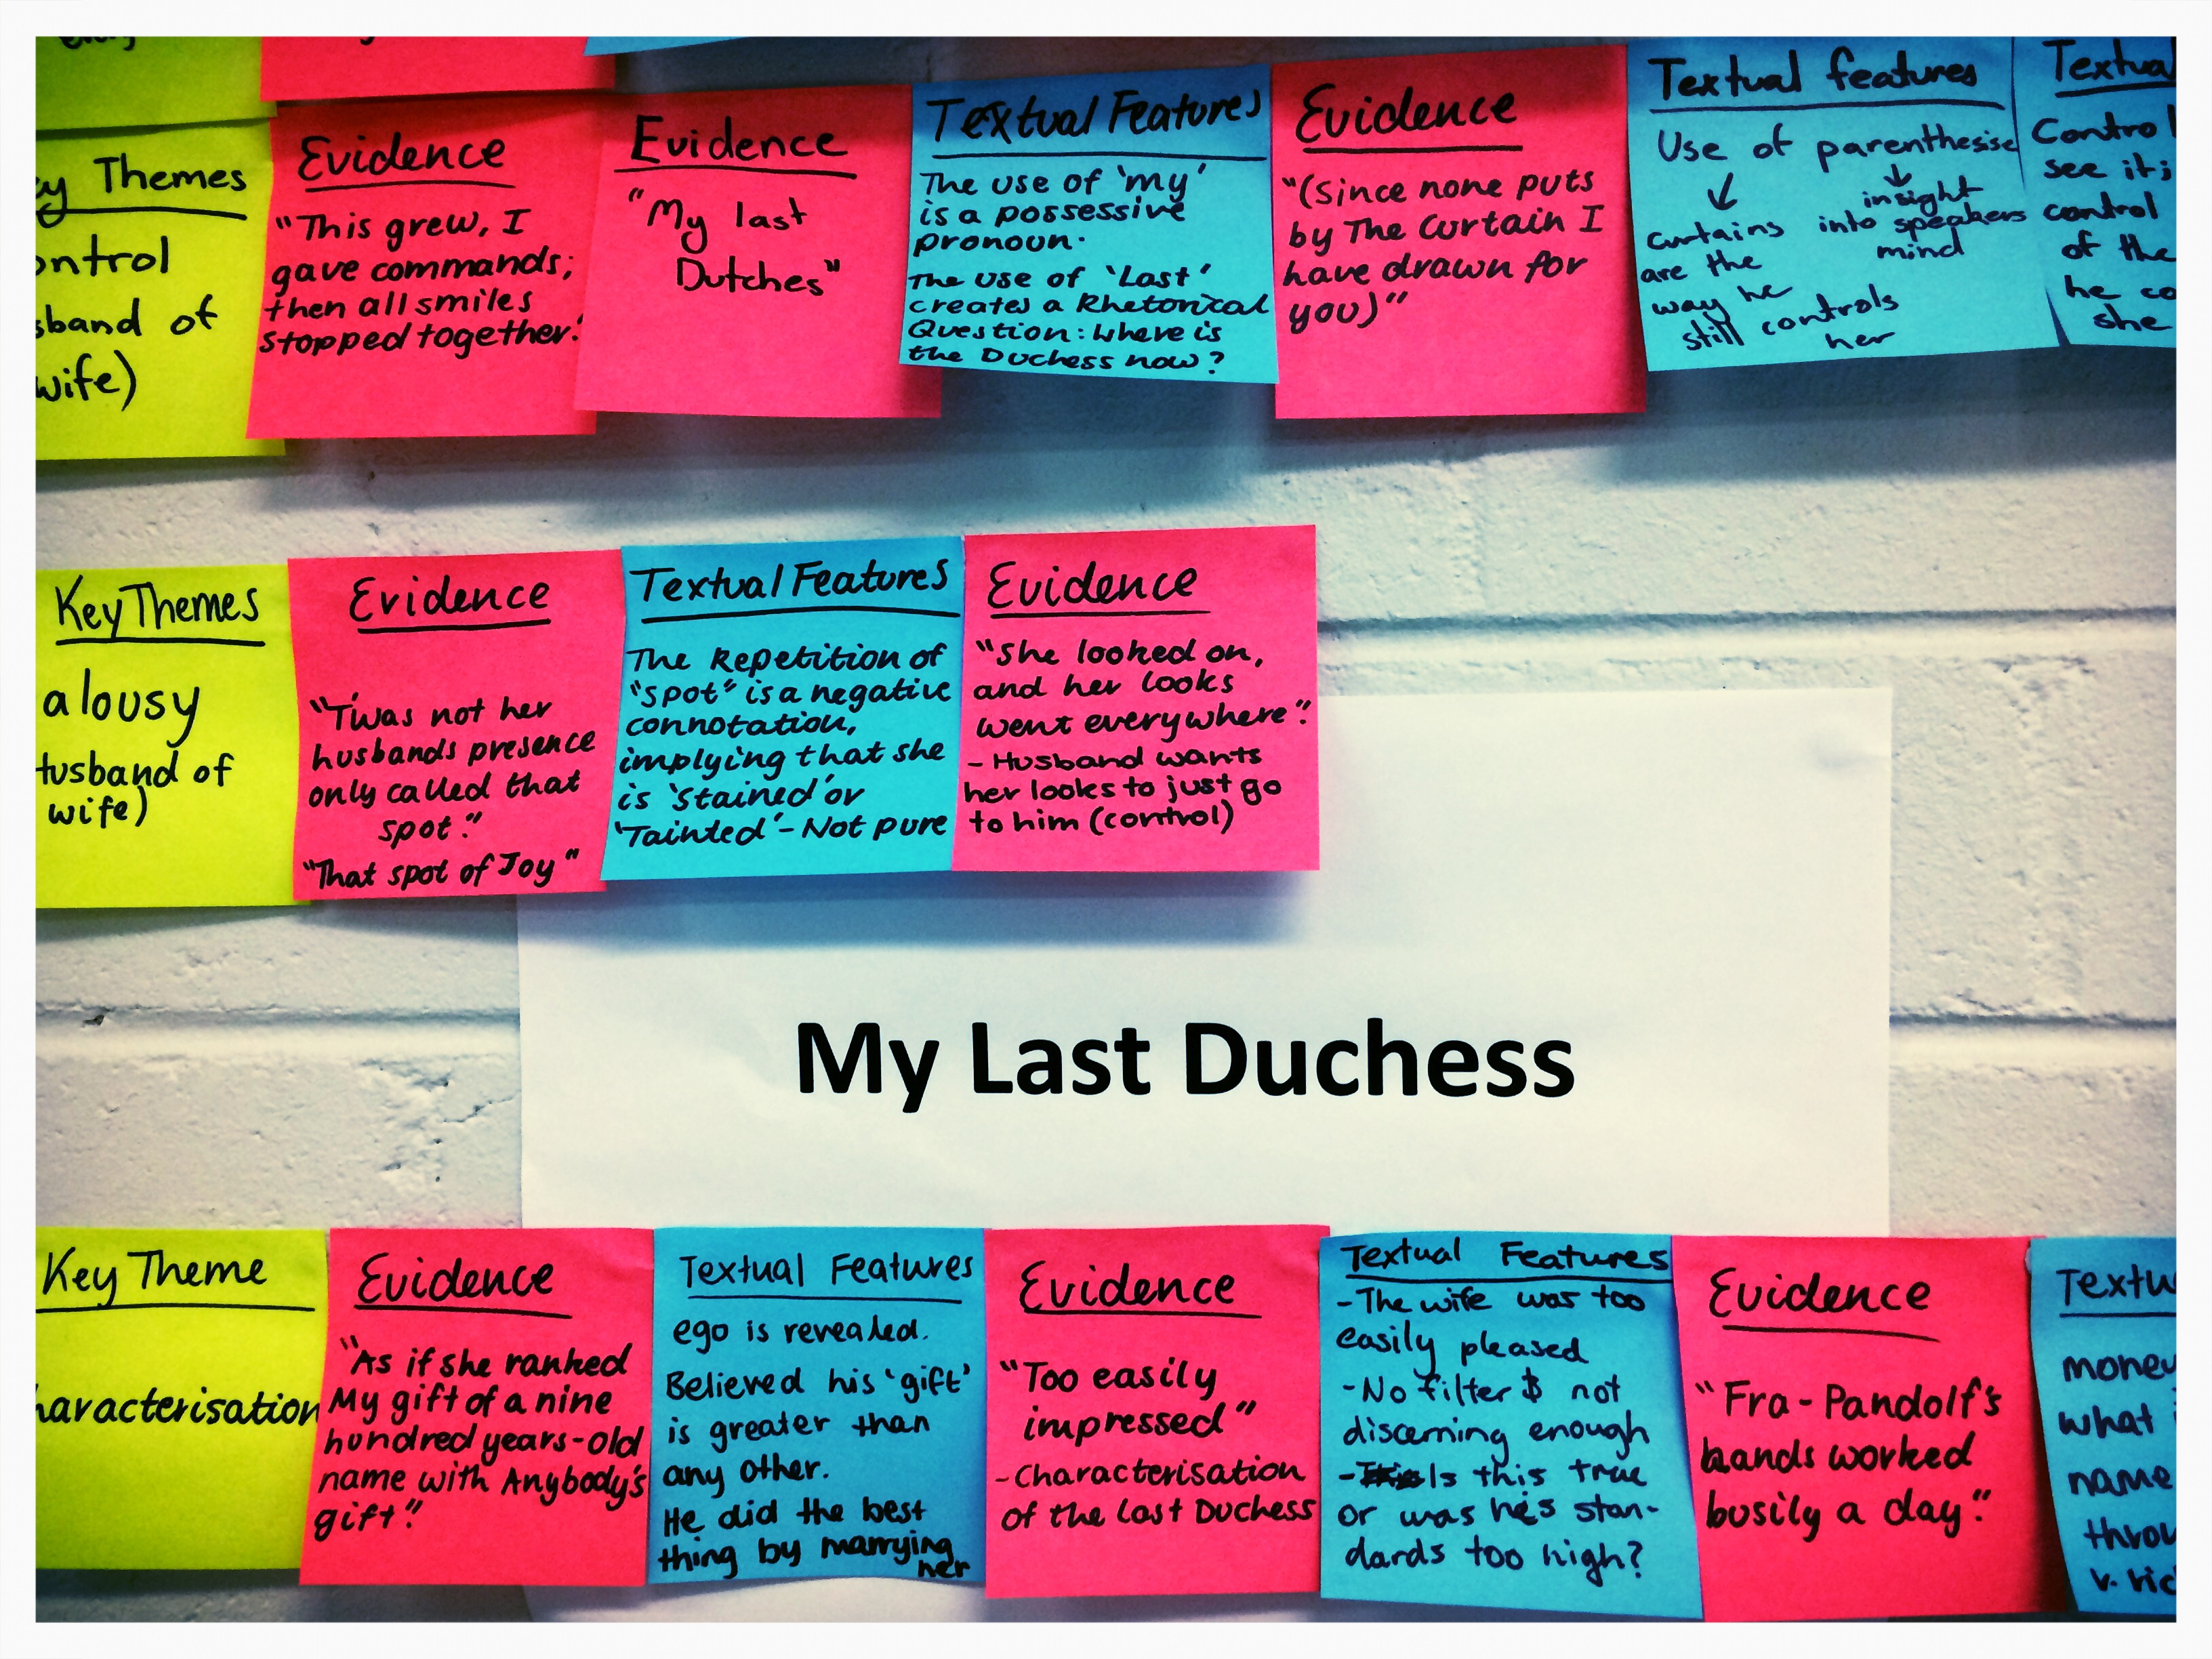 Help me with my essay last duchess as a dramatic monologue